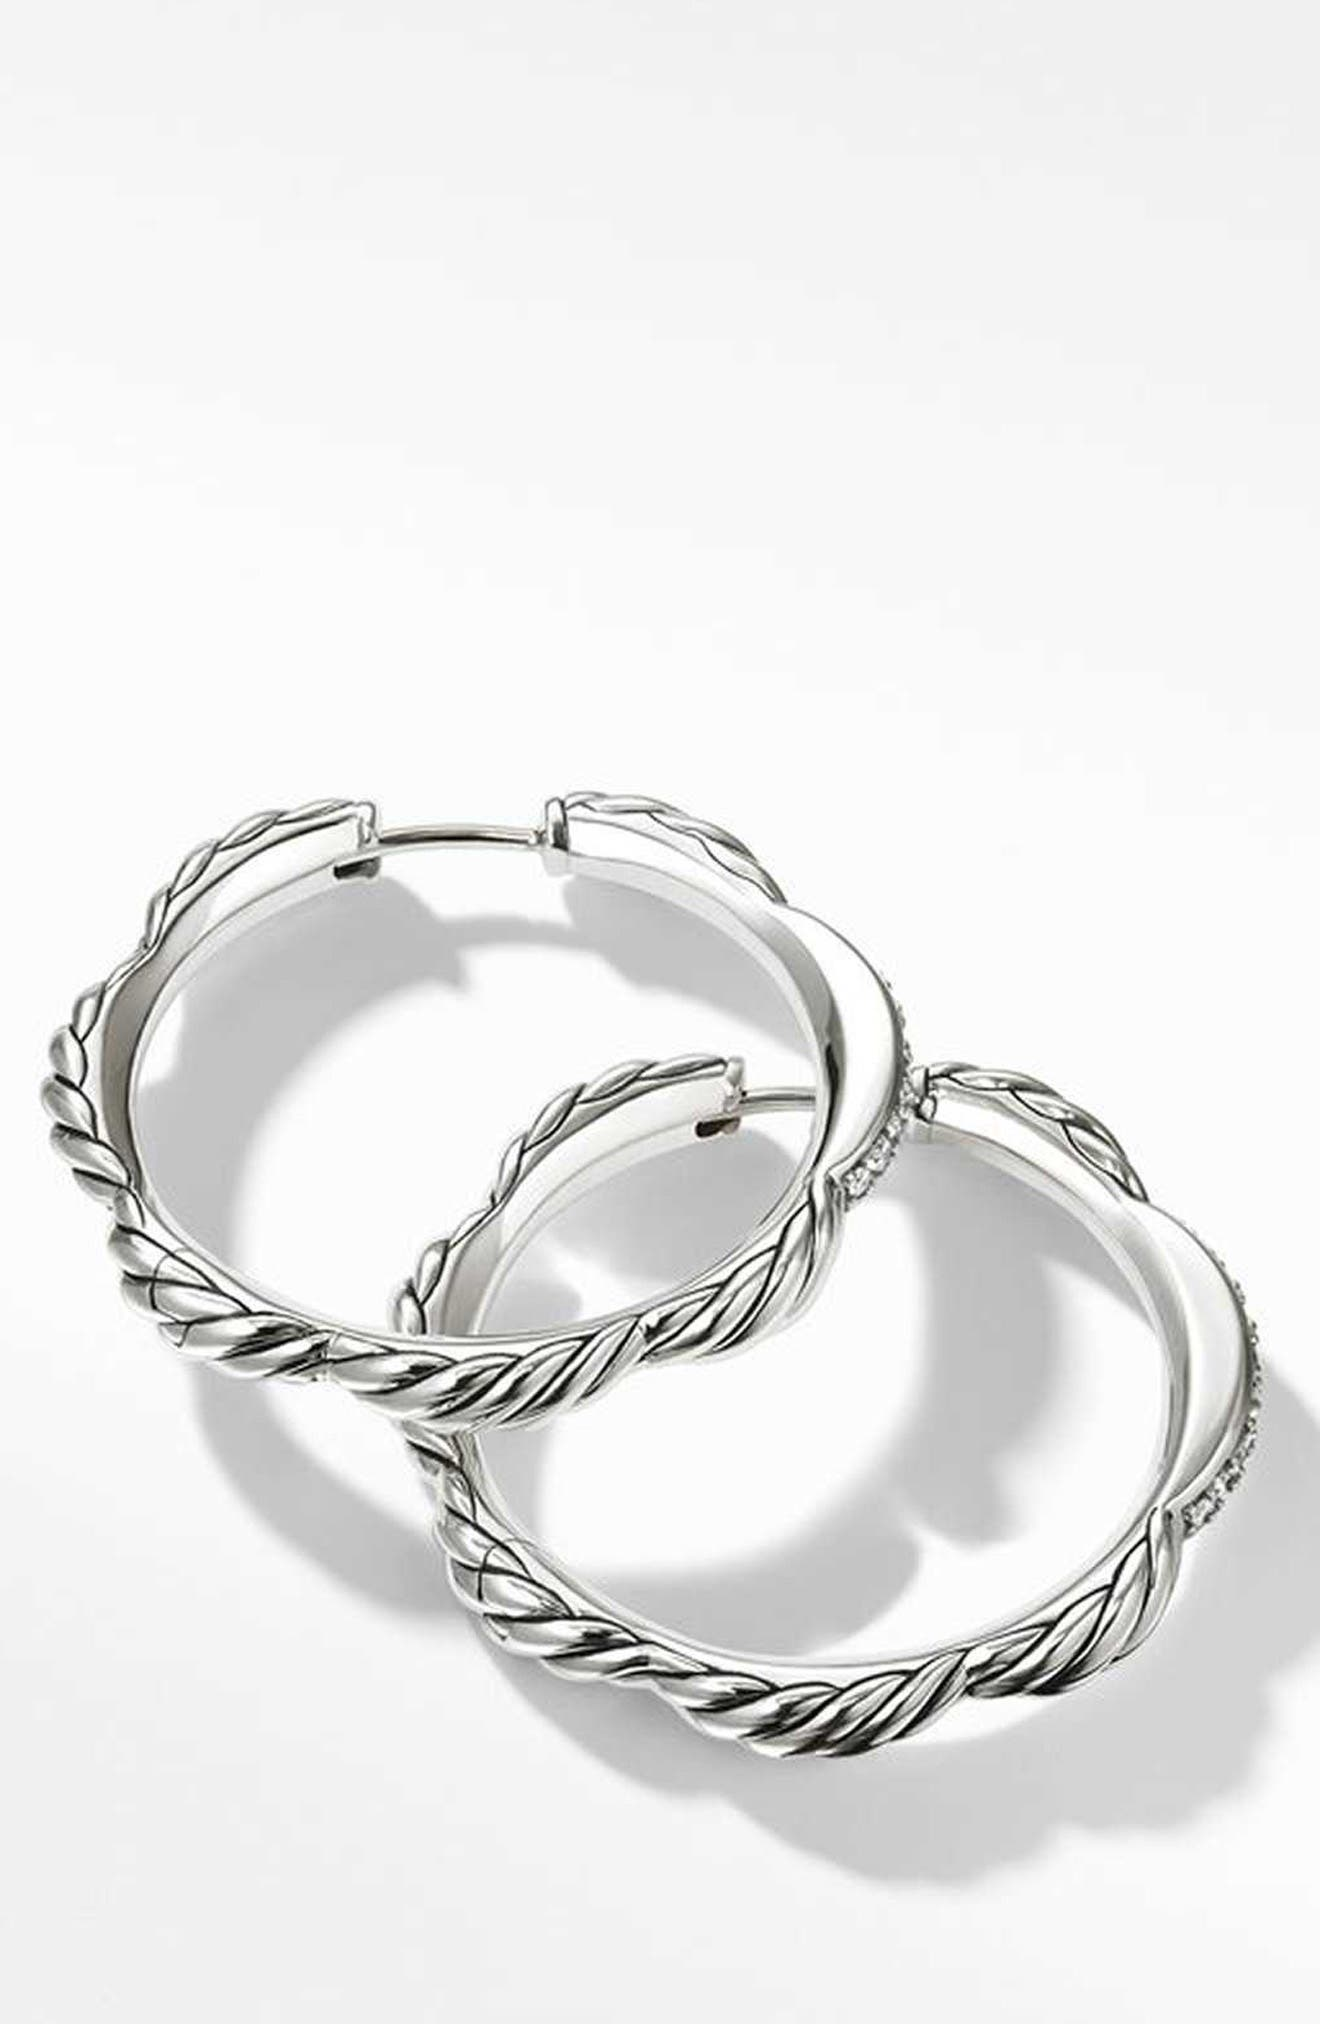 Tides Collection Hoop Earrings with Diamonds,                             Alternate thumbnail 2, color,                             STERLING SILVER/ DIAMOND